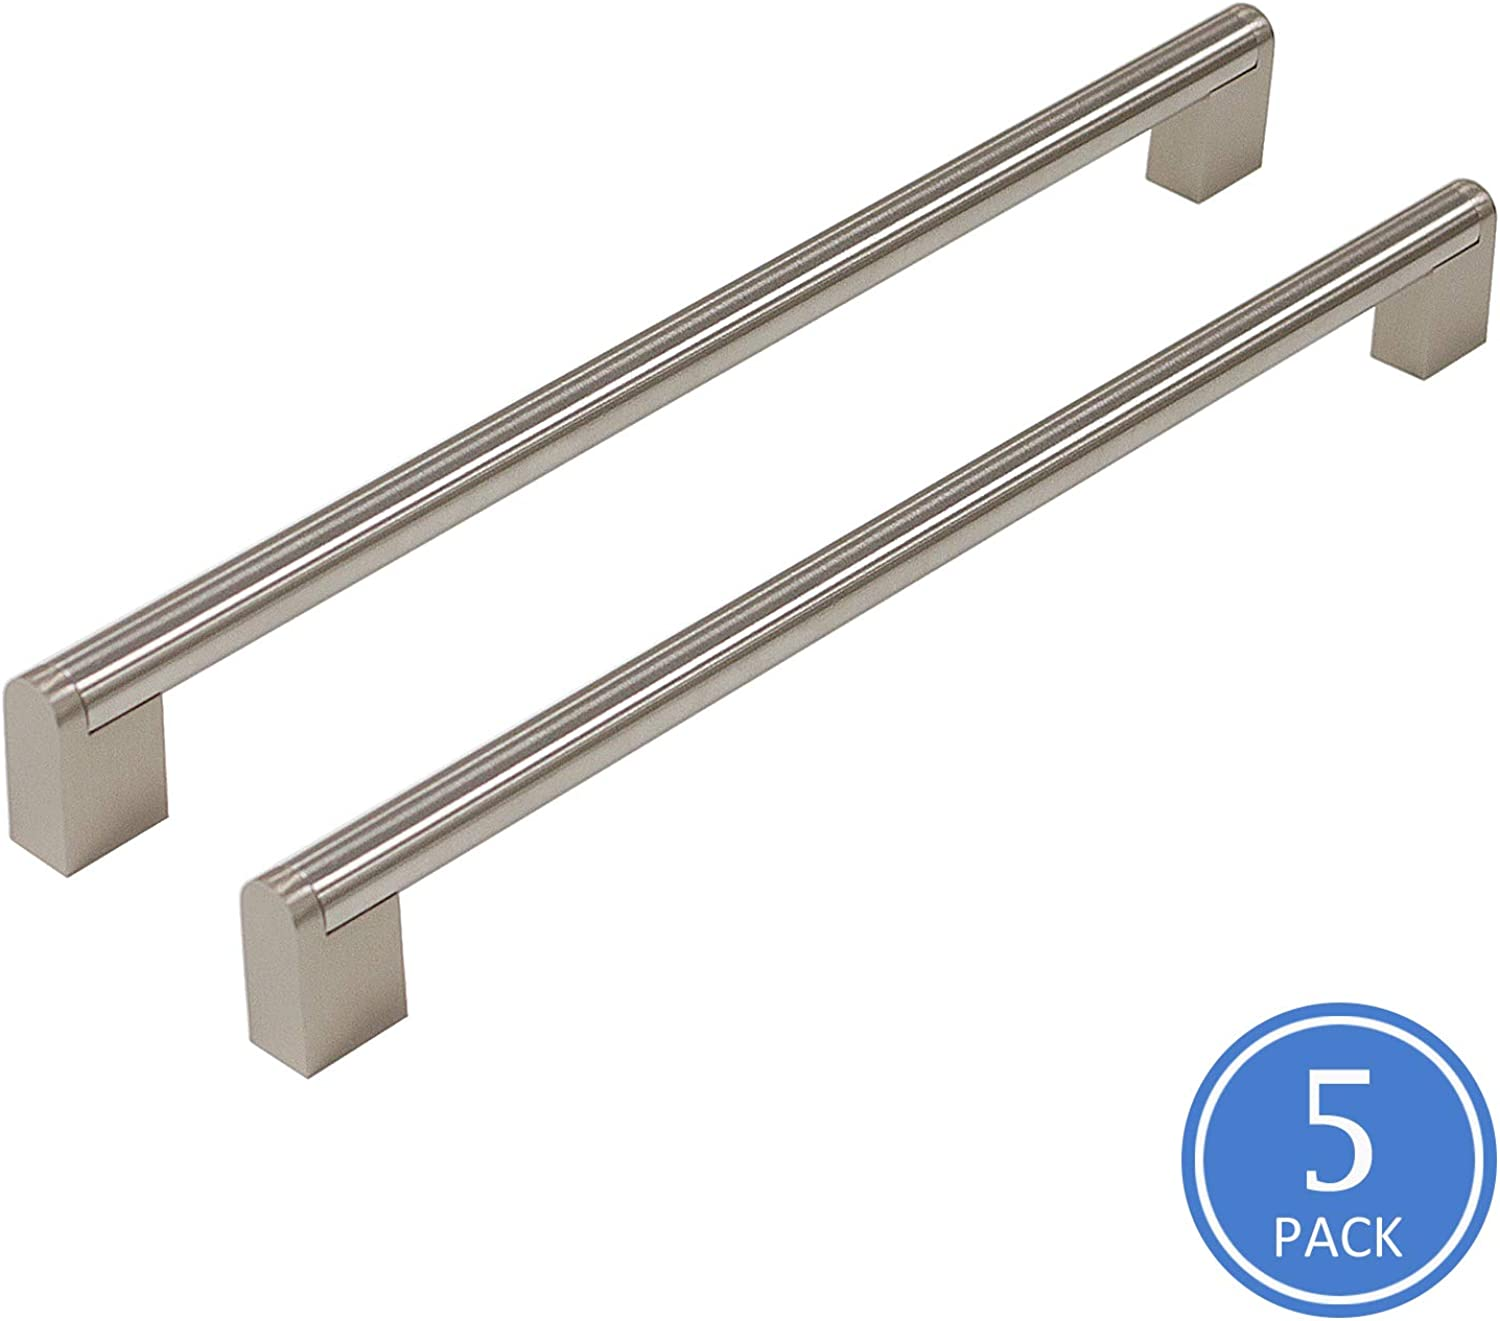 5 Pack 288mm(11-1 2inch) Hole Centers Diameter 14mm Stainless Steel Boss Bar Kitchen Cabinet Door Handles and Pulls Cabinet Knobs Brushed Nickel